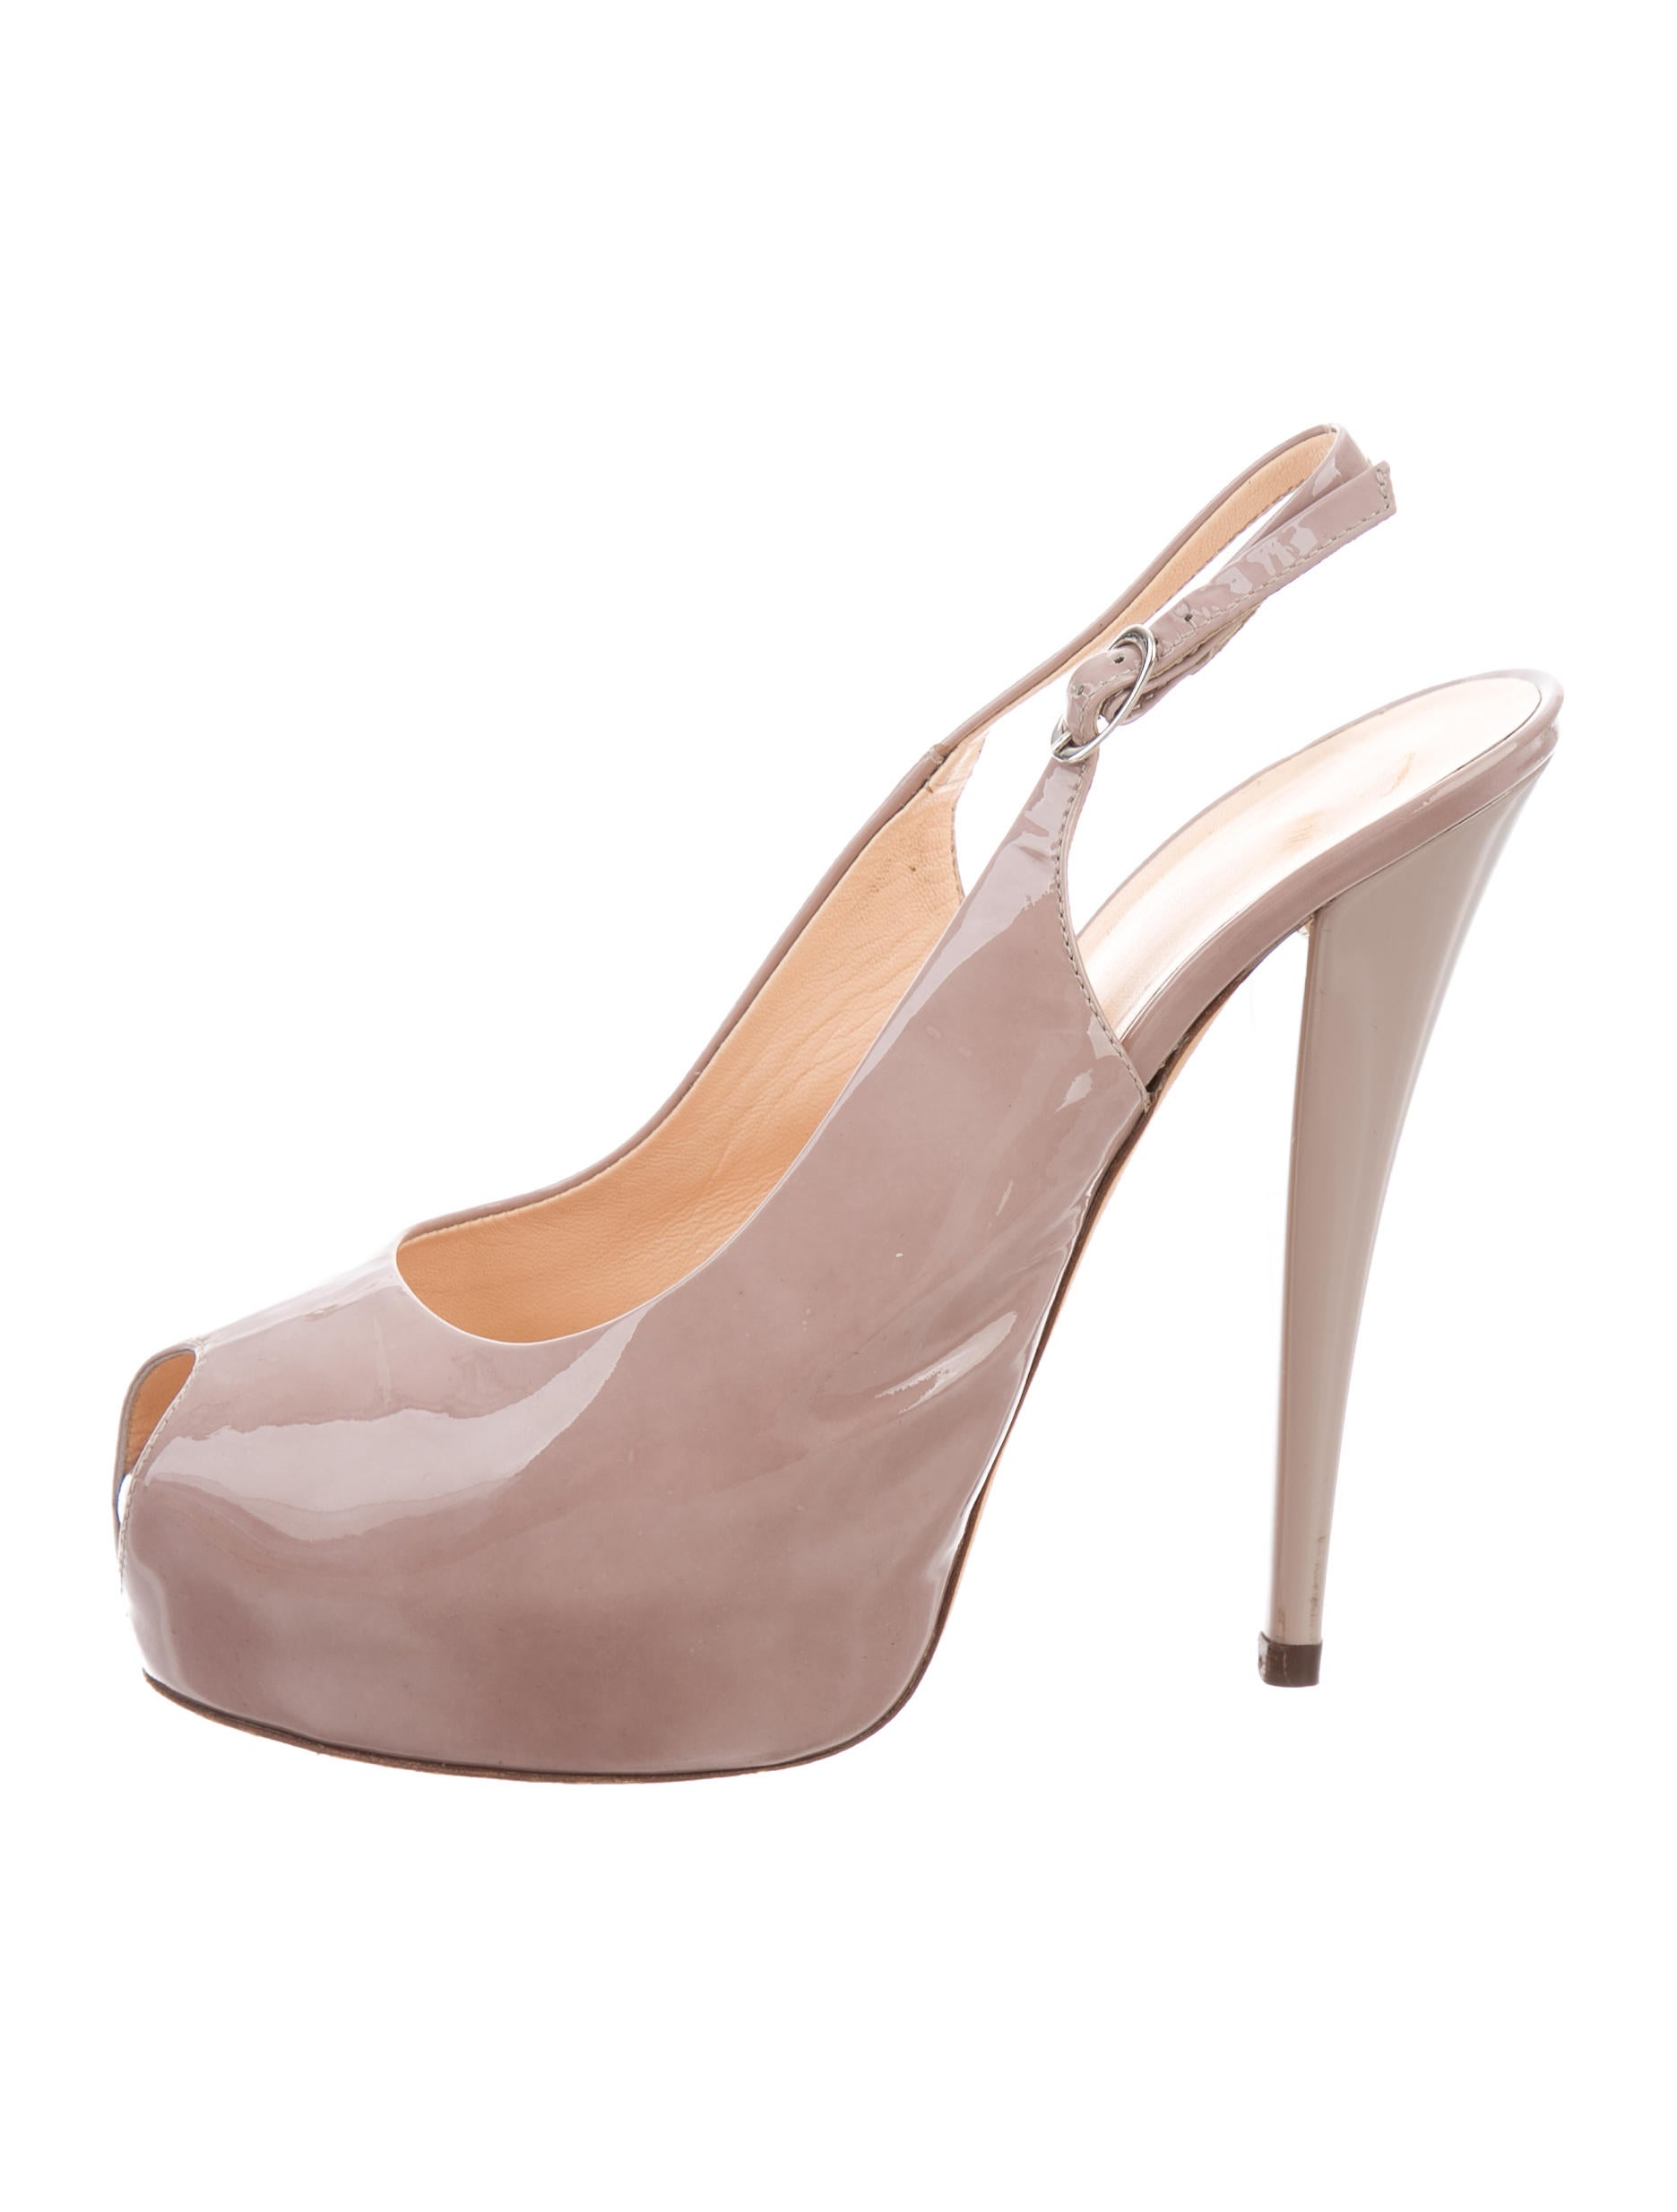 2ed682f37d Giuseppe Zanotti High Heels Gold Quest Pink And Silver Nike Shoes ...